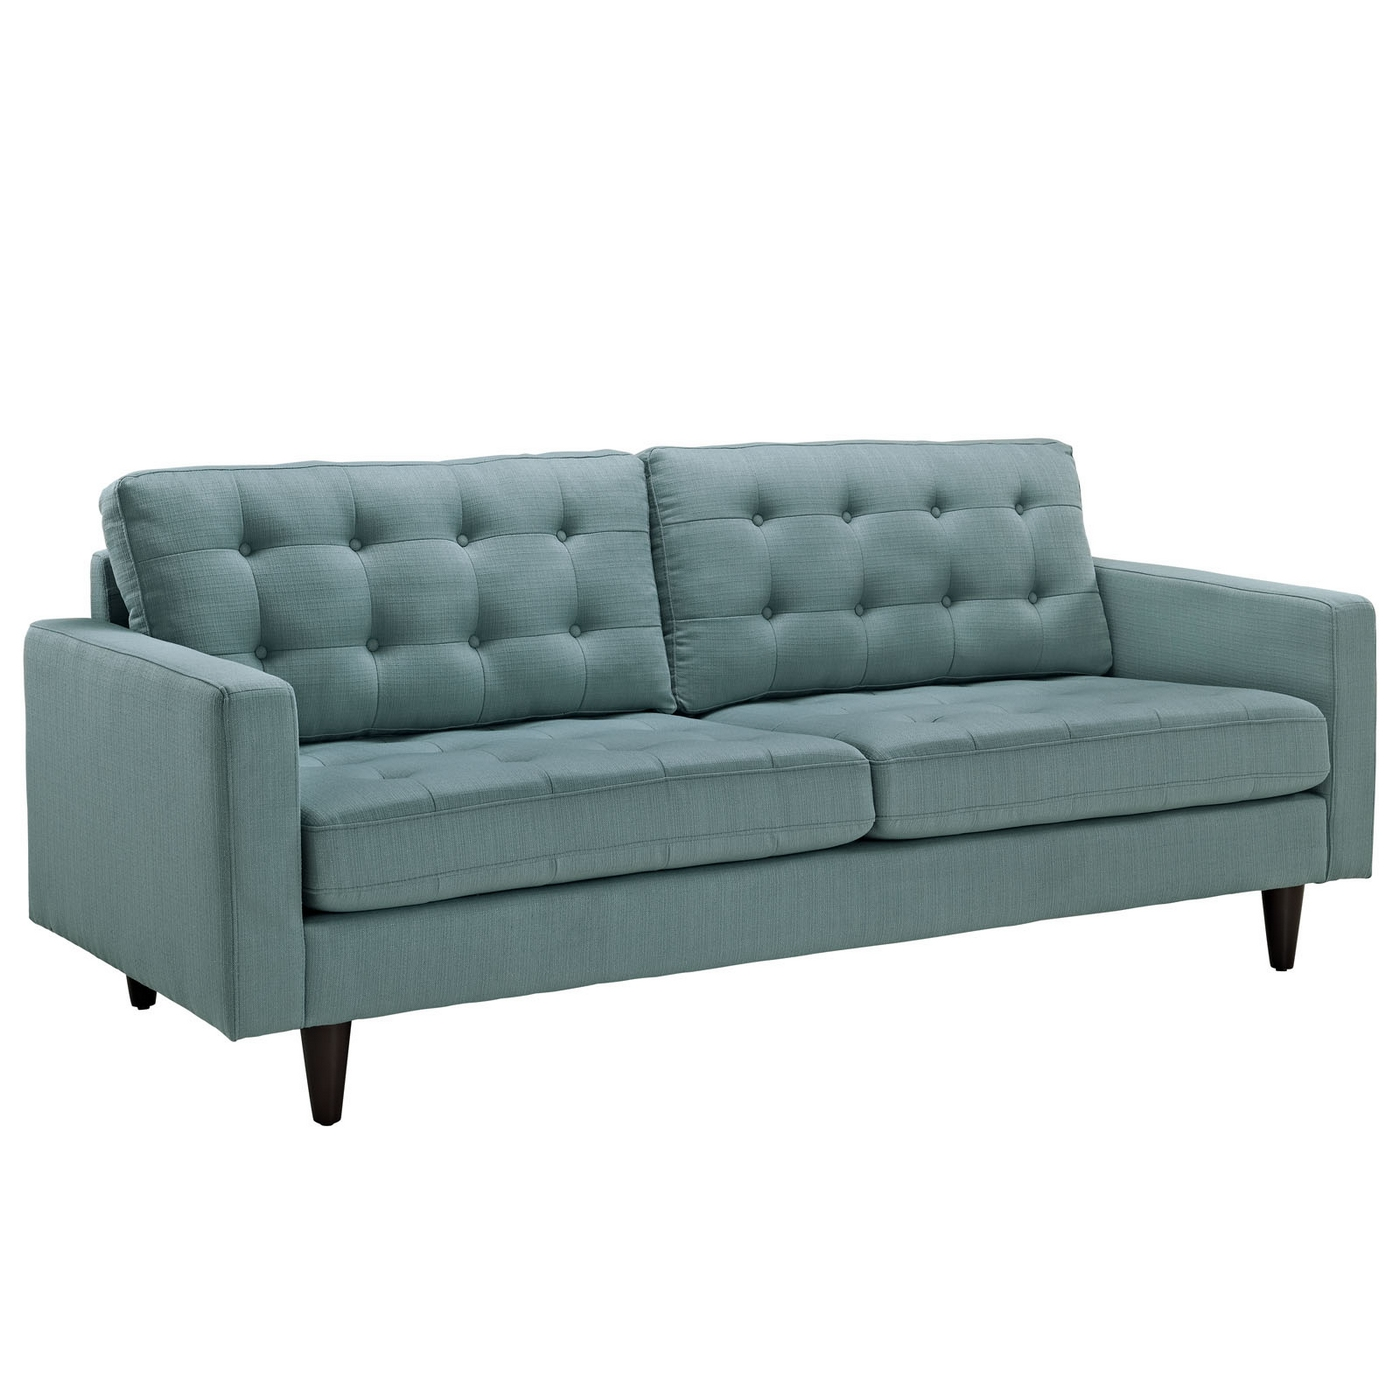 Empress Contemporary Button Tufted Upholstered Sofa Laguna